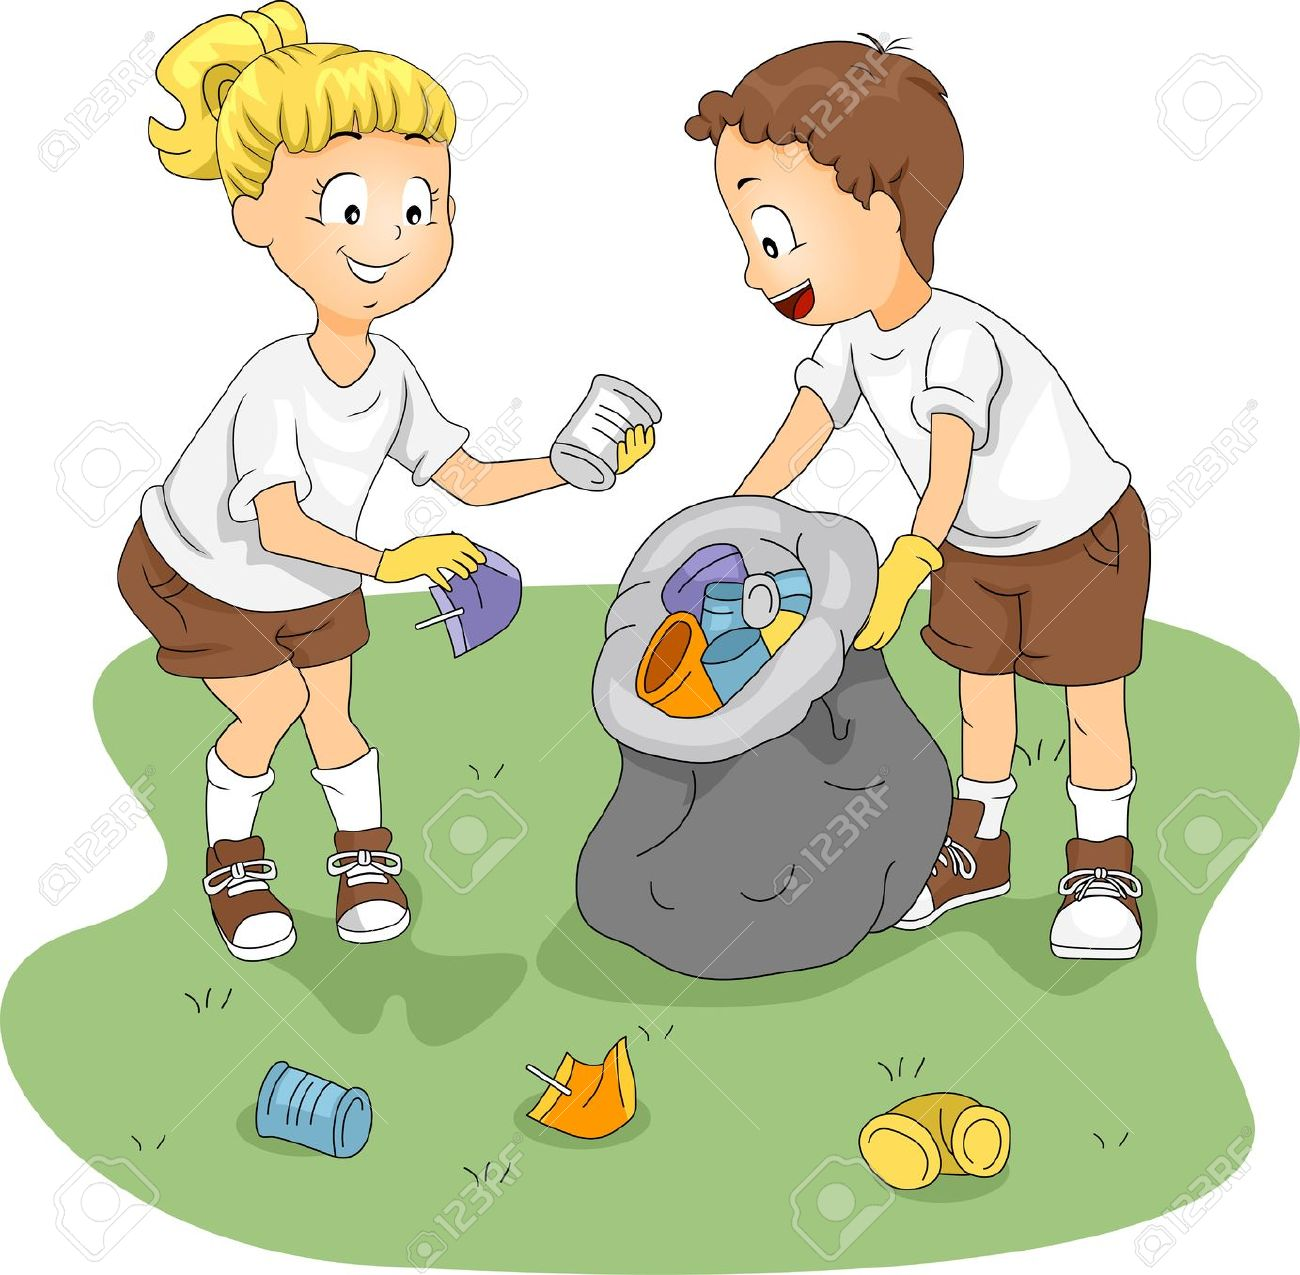 Clipart kids cleaning together.